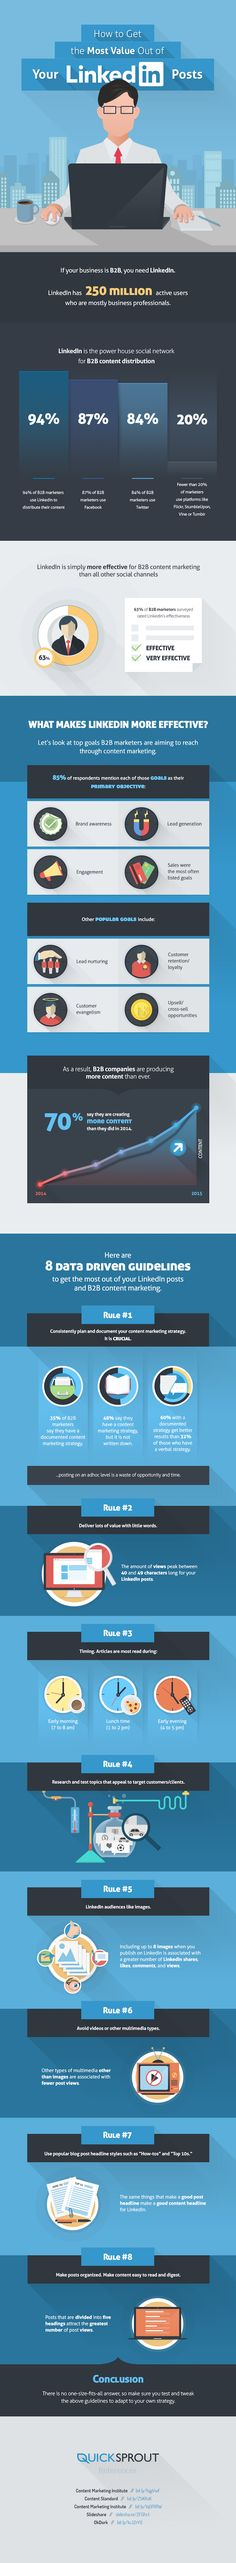 LinkedIn posts can be super effective. #infographic